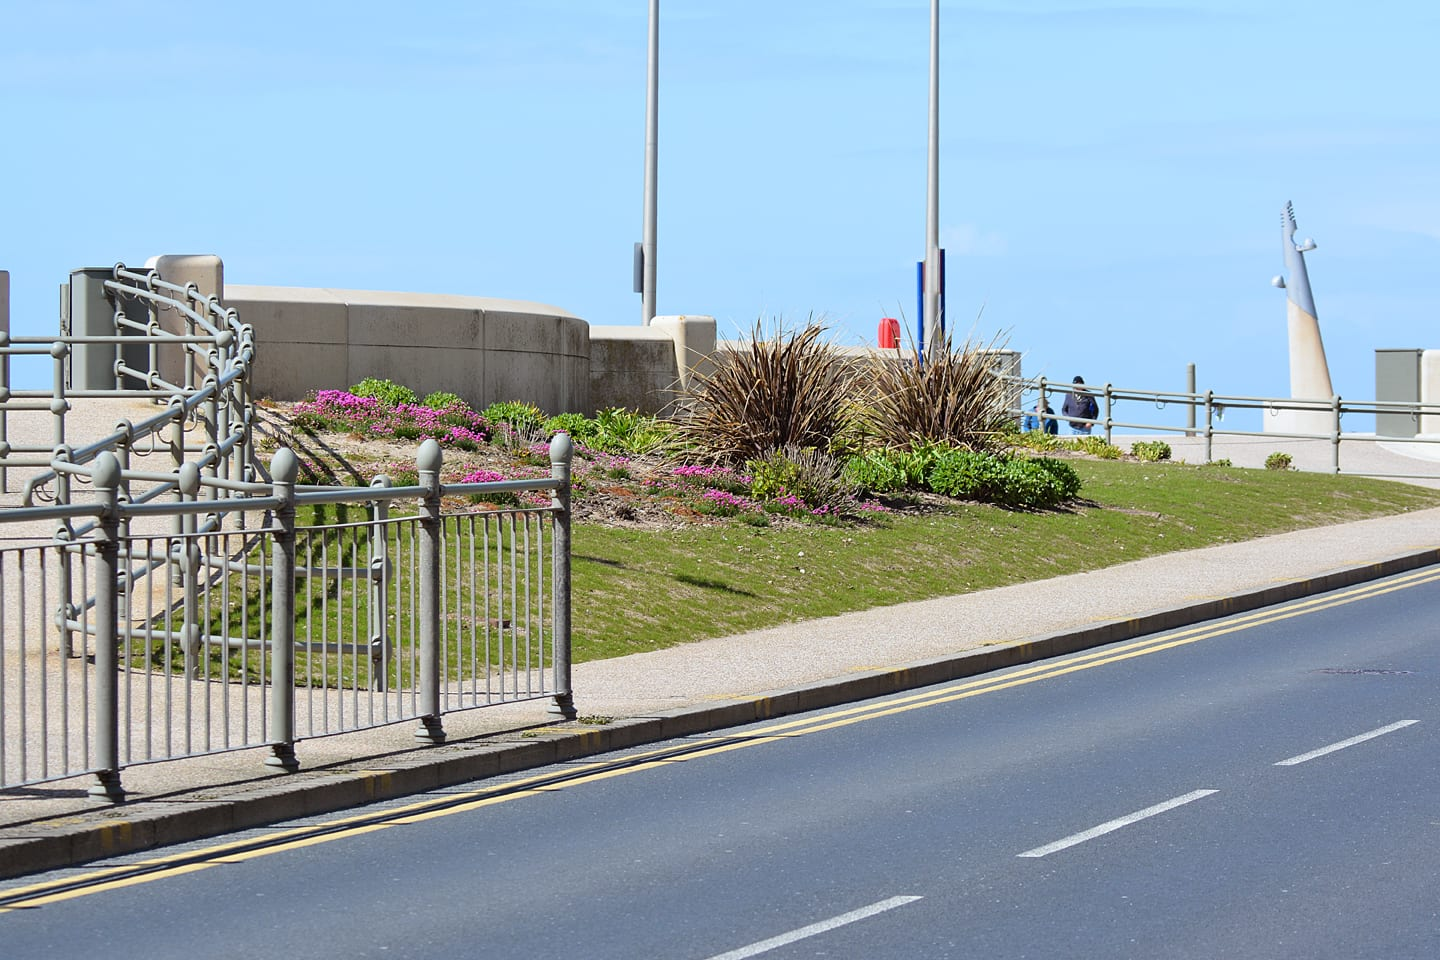 Grassed area on Cleveleys seafront